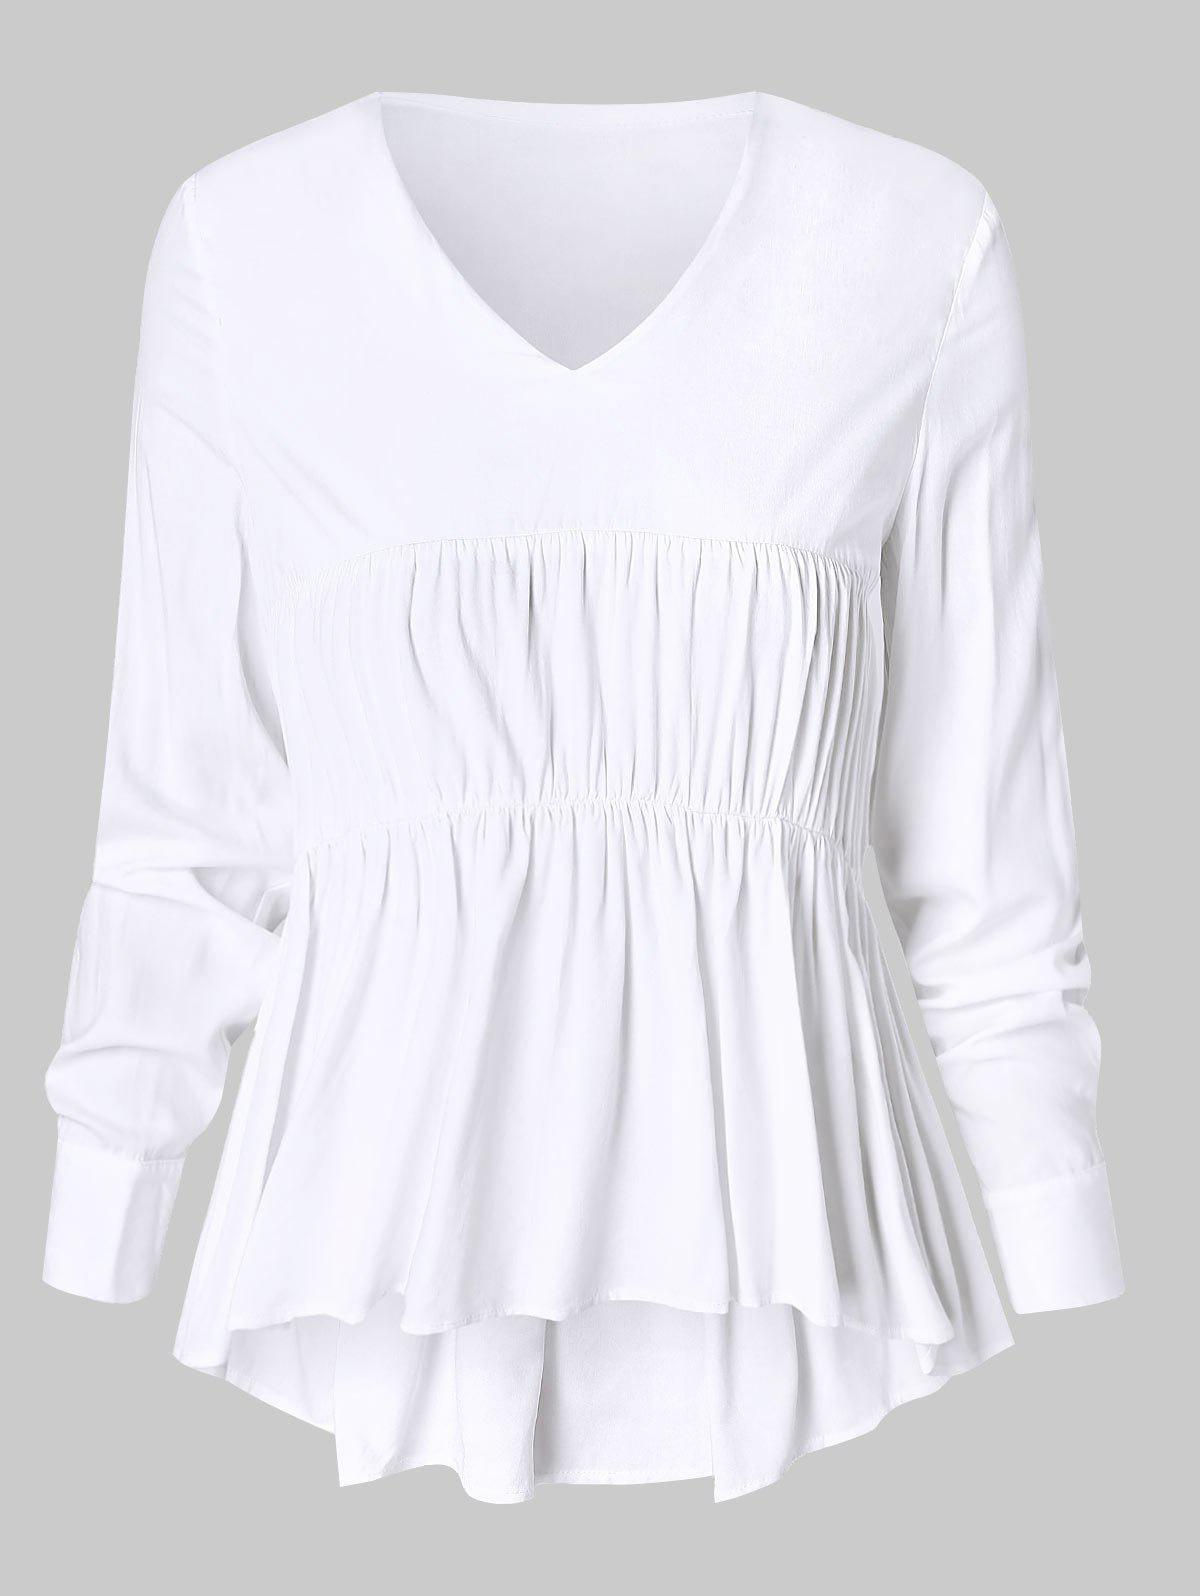 Shop Plus Size Smocked High Low Flounced Blouse